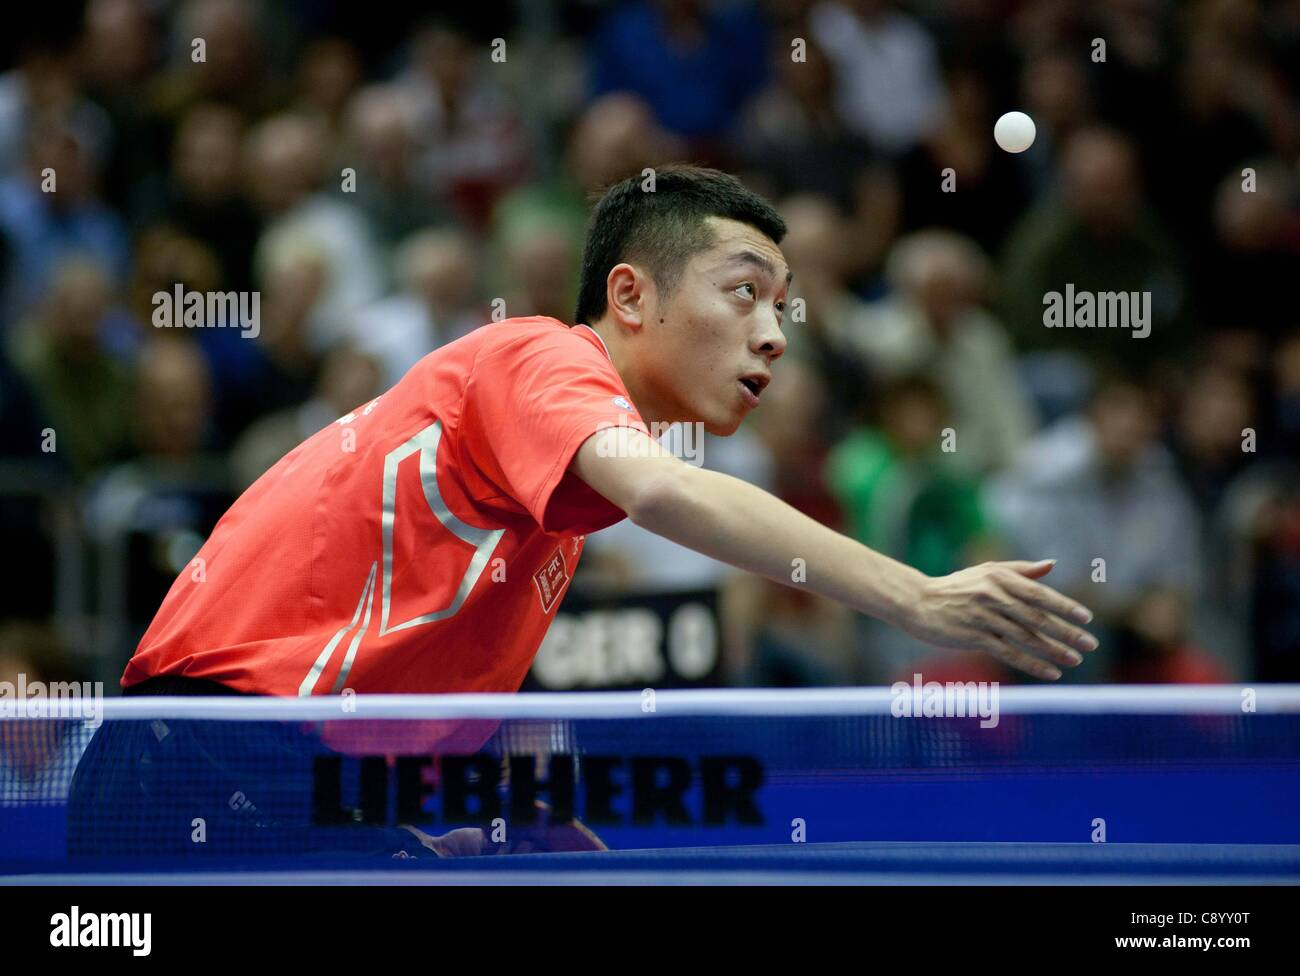 05 11 2011 Magdeburg, Germany. Xu Xin China Semi-finals Germany vs China Table Tennis   World team Cup 2011 in the - Stock Image